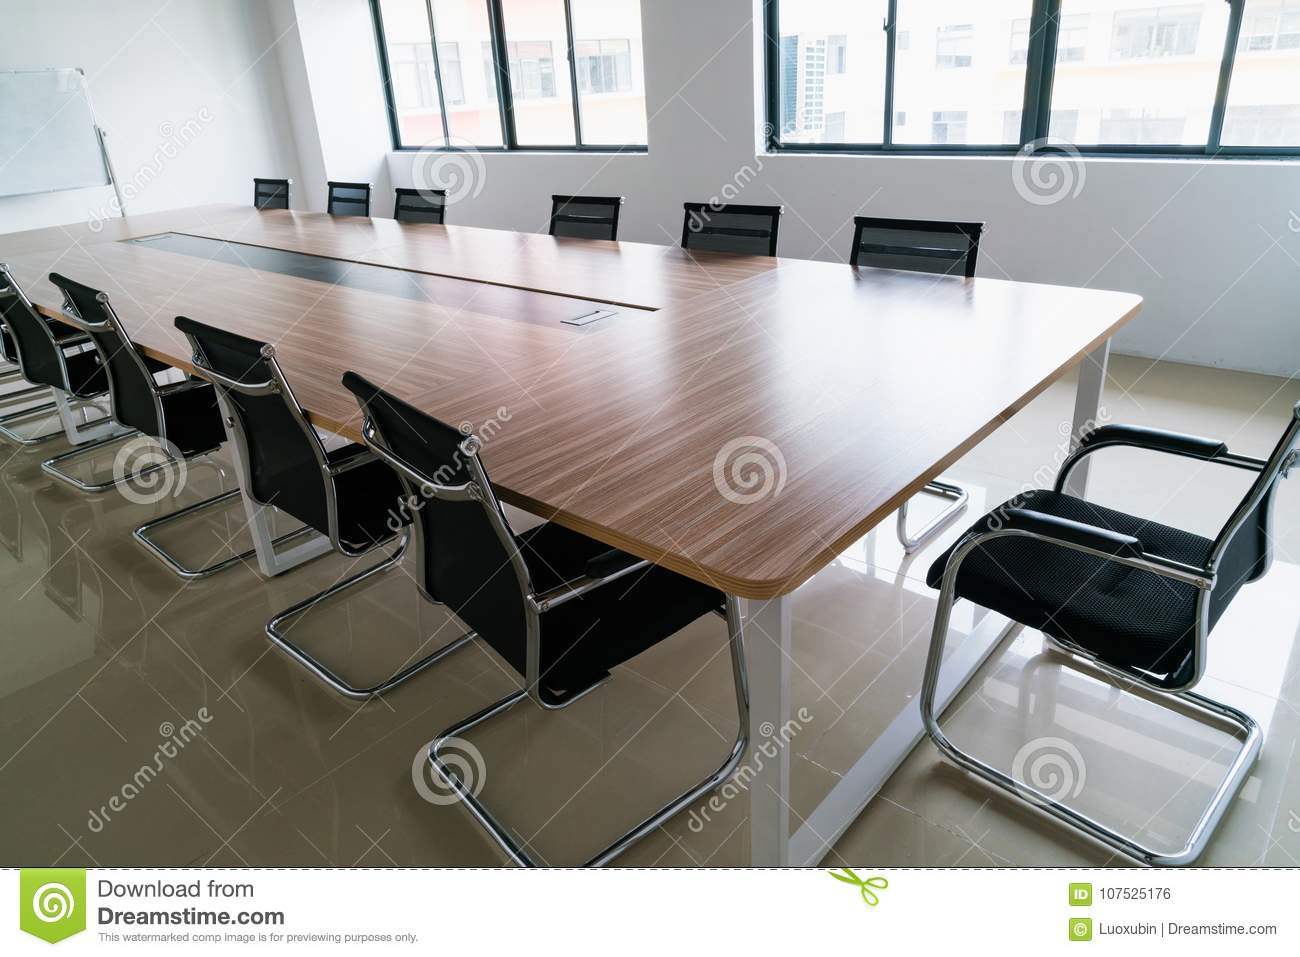 Conference Room Stock Photo Image Of Office Decor 107525176